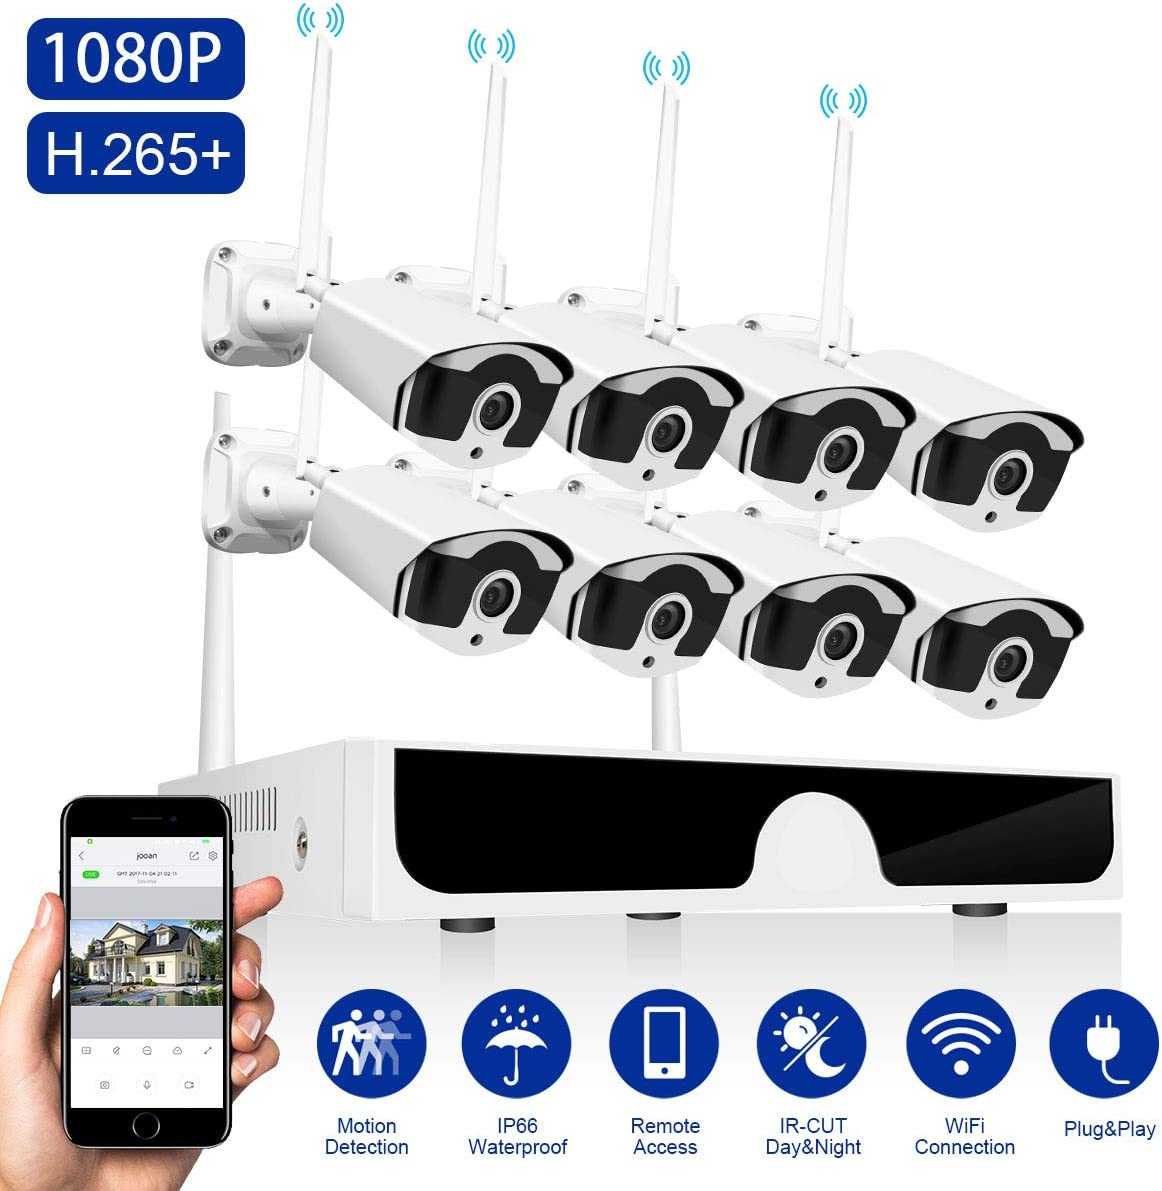 Wireless Security Camera System 1080P Abowone Wireless 8 Channel H.265 NVR 8PCS 2.0MP 1080P Waterproof Indoor Outdoor Wireless IP Cameras Motion Detect Remote View 100ft Night Vision No Hard Drive